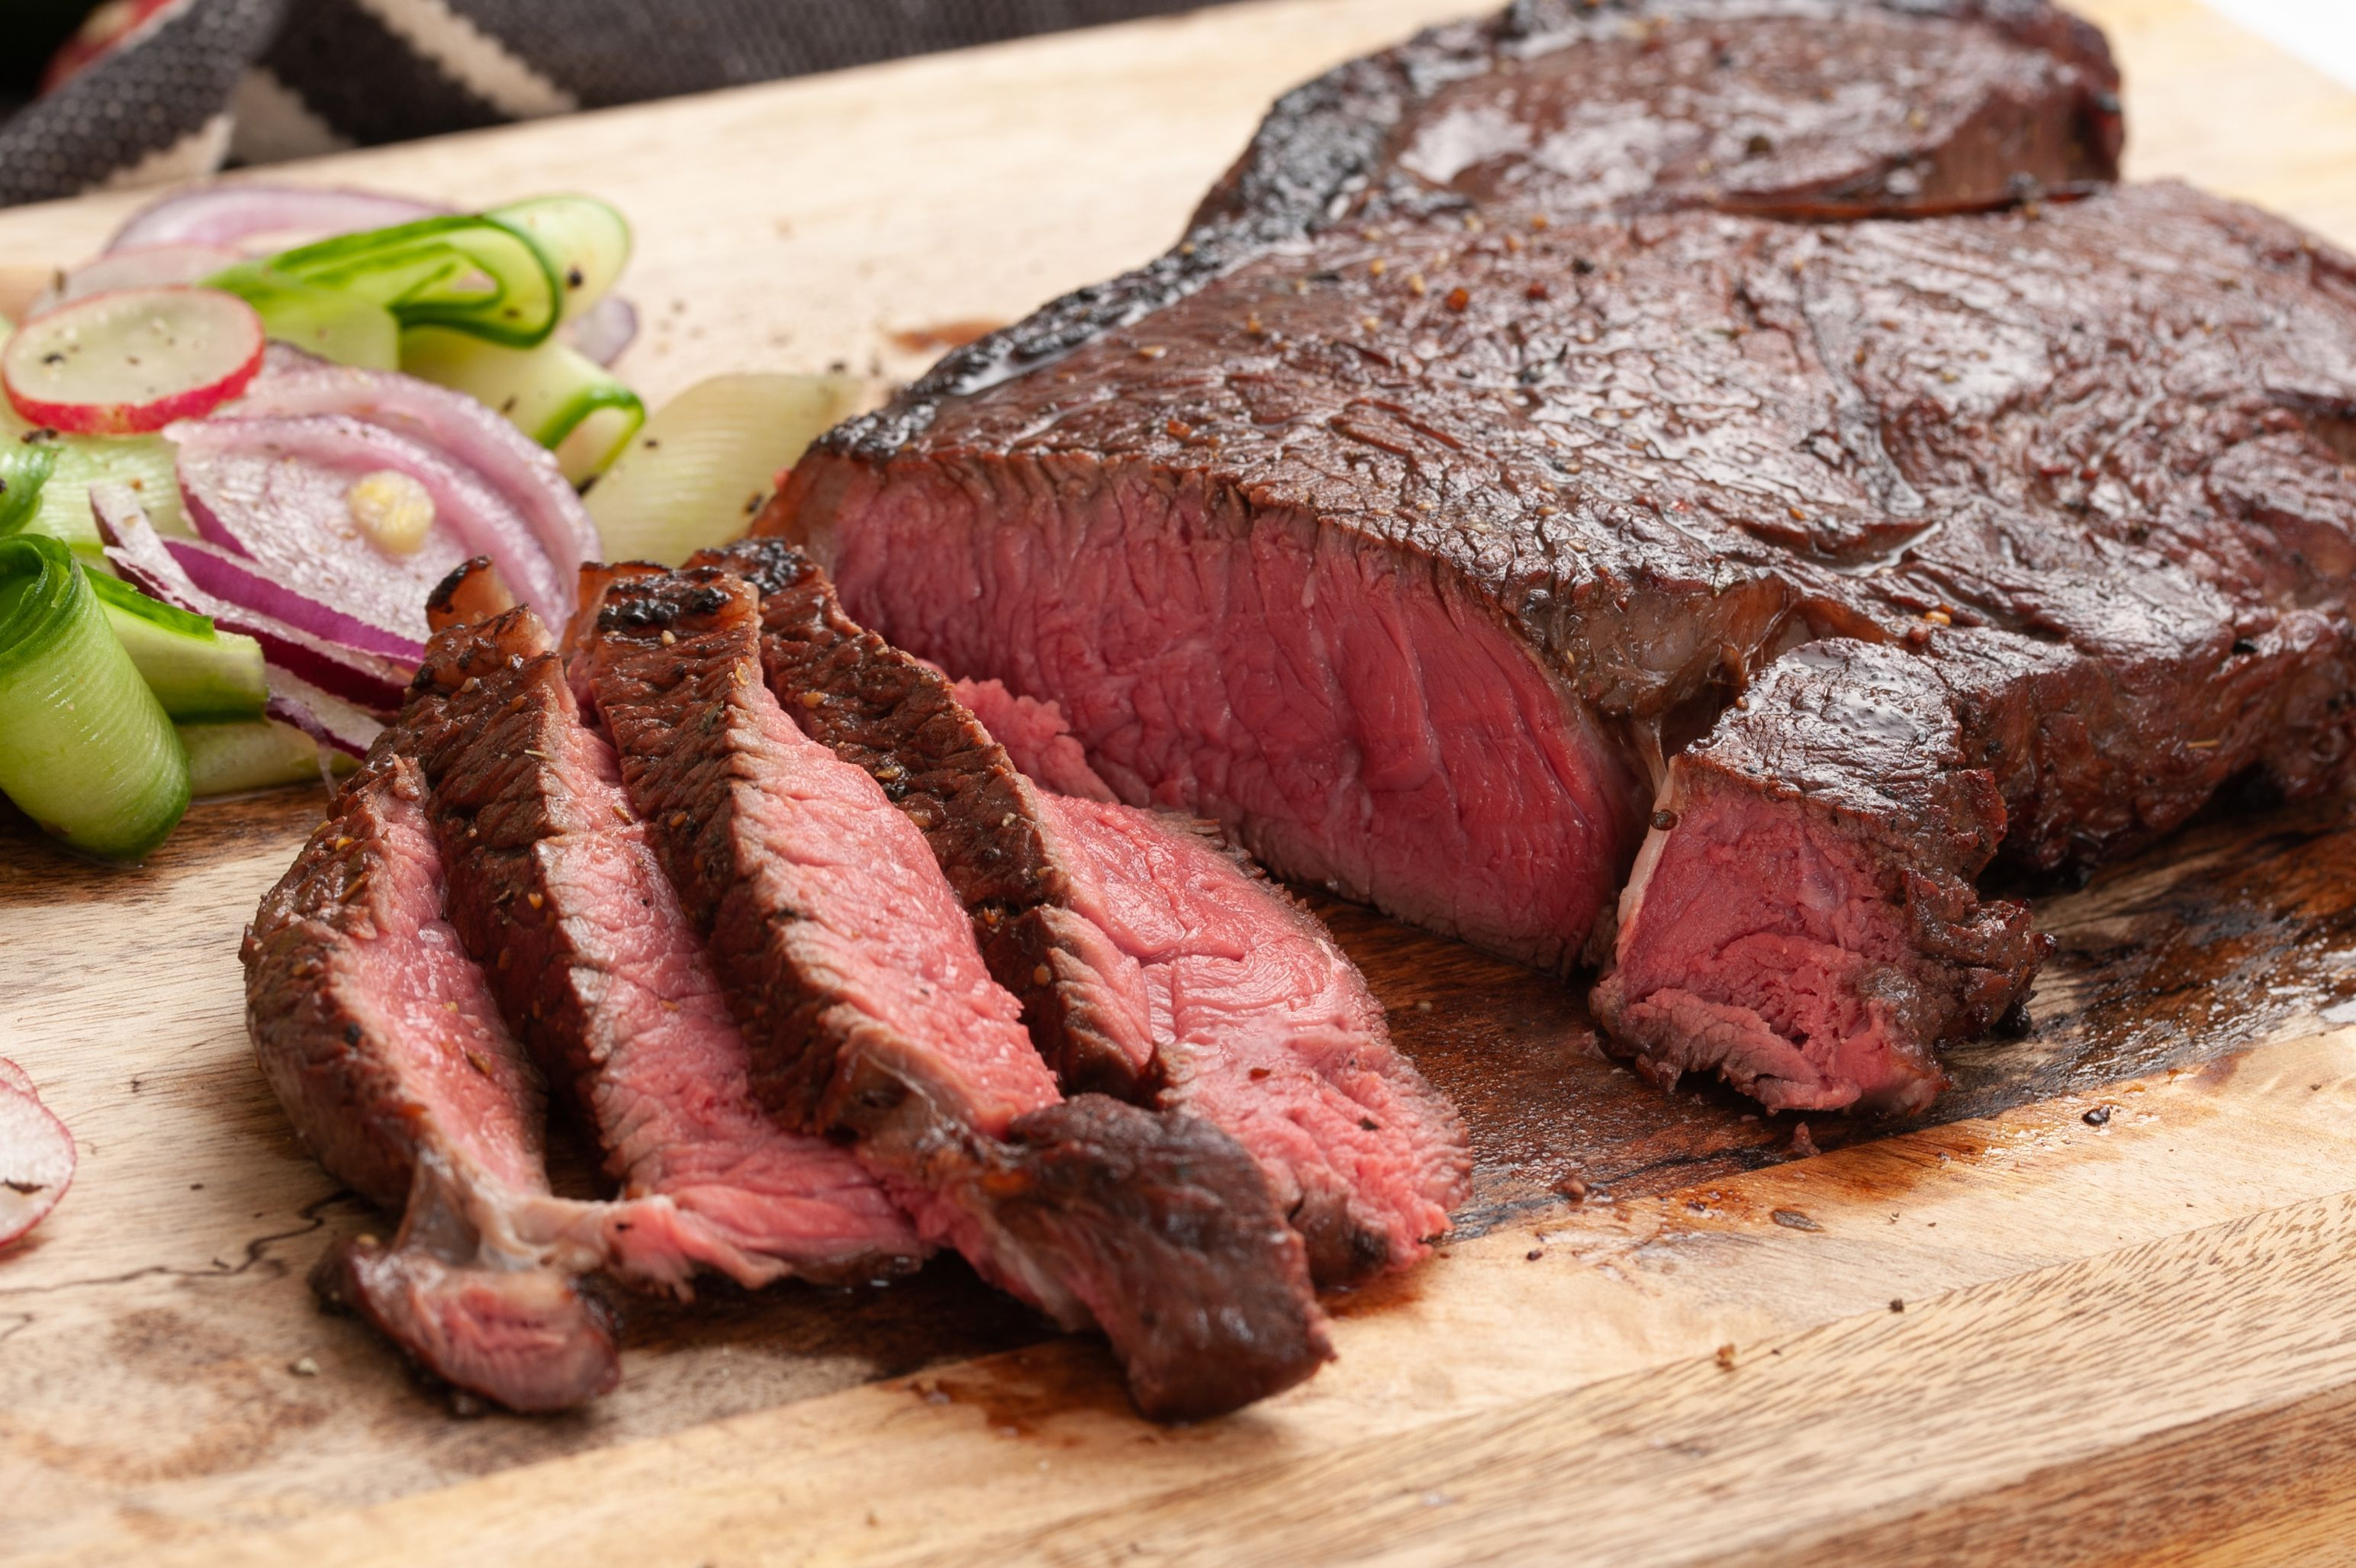 Marinated Top Round Steak For The Broiler Or Grill Recipe Round Steak Recipes Top Round Steak Top Round Steak Recipes